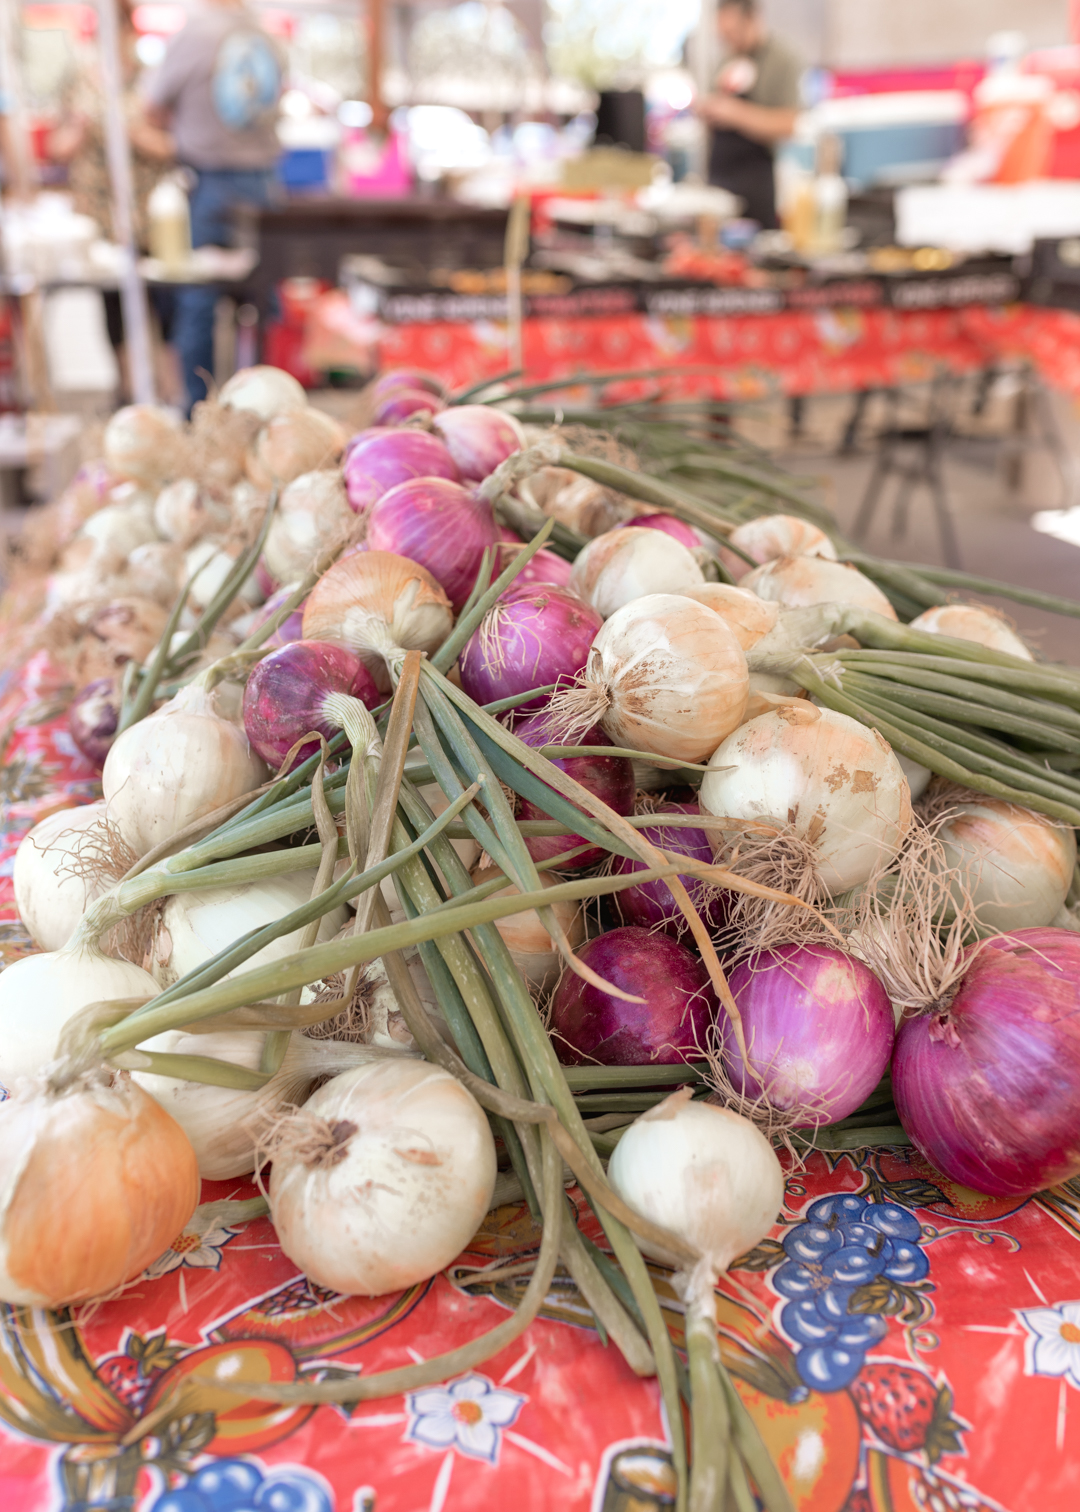 onions at the farmer's market